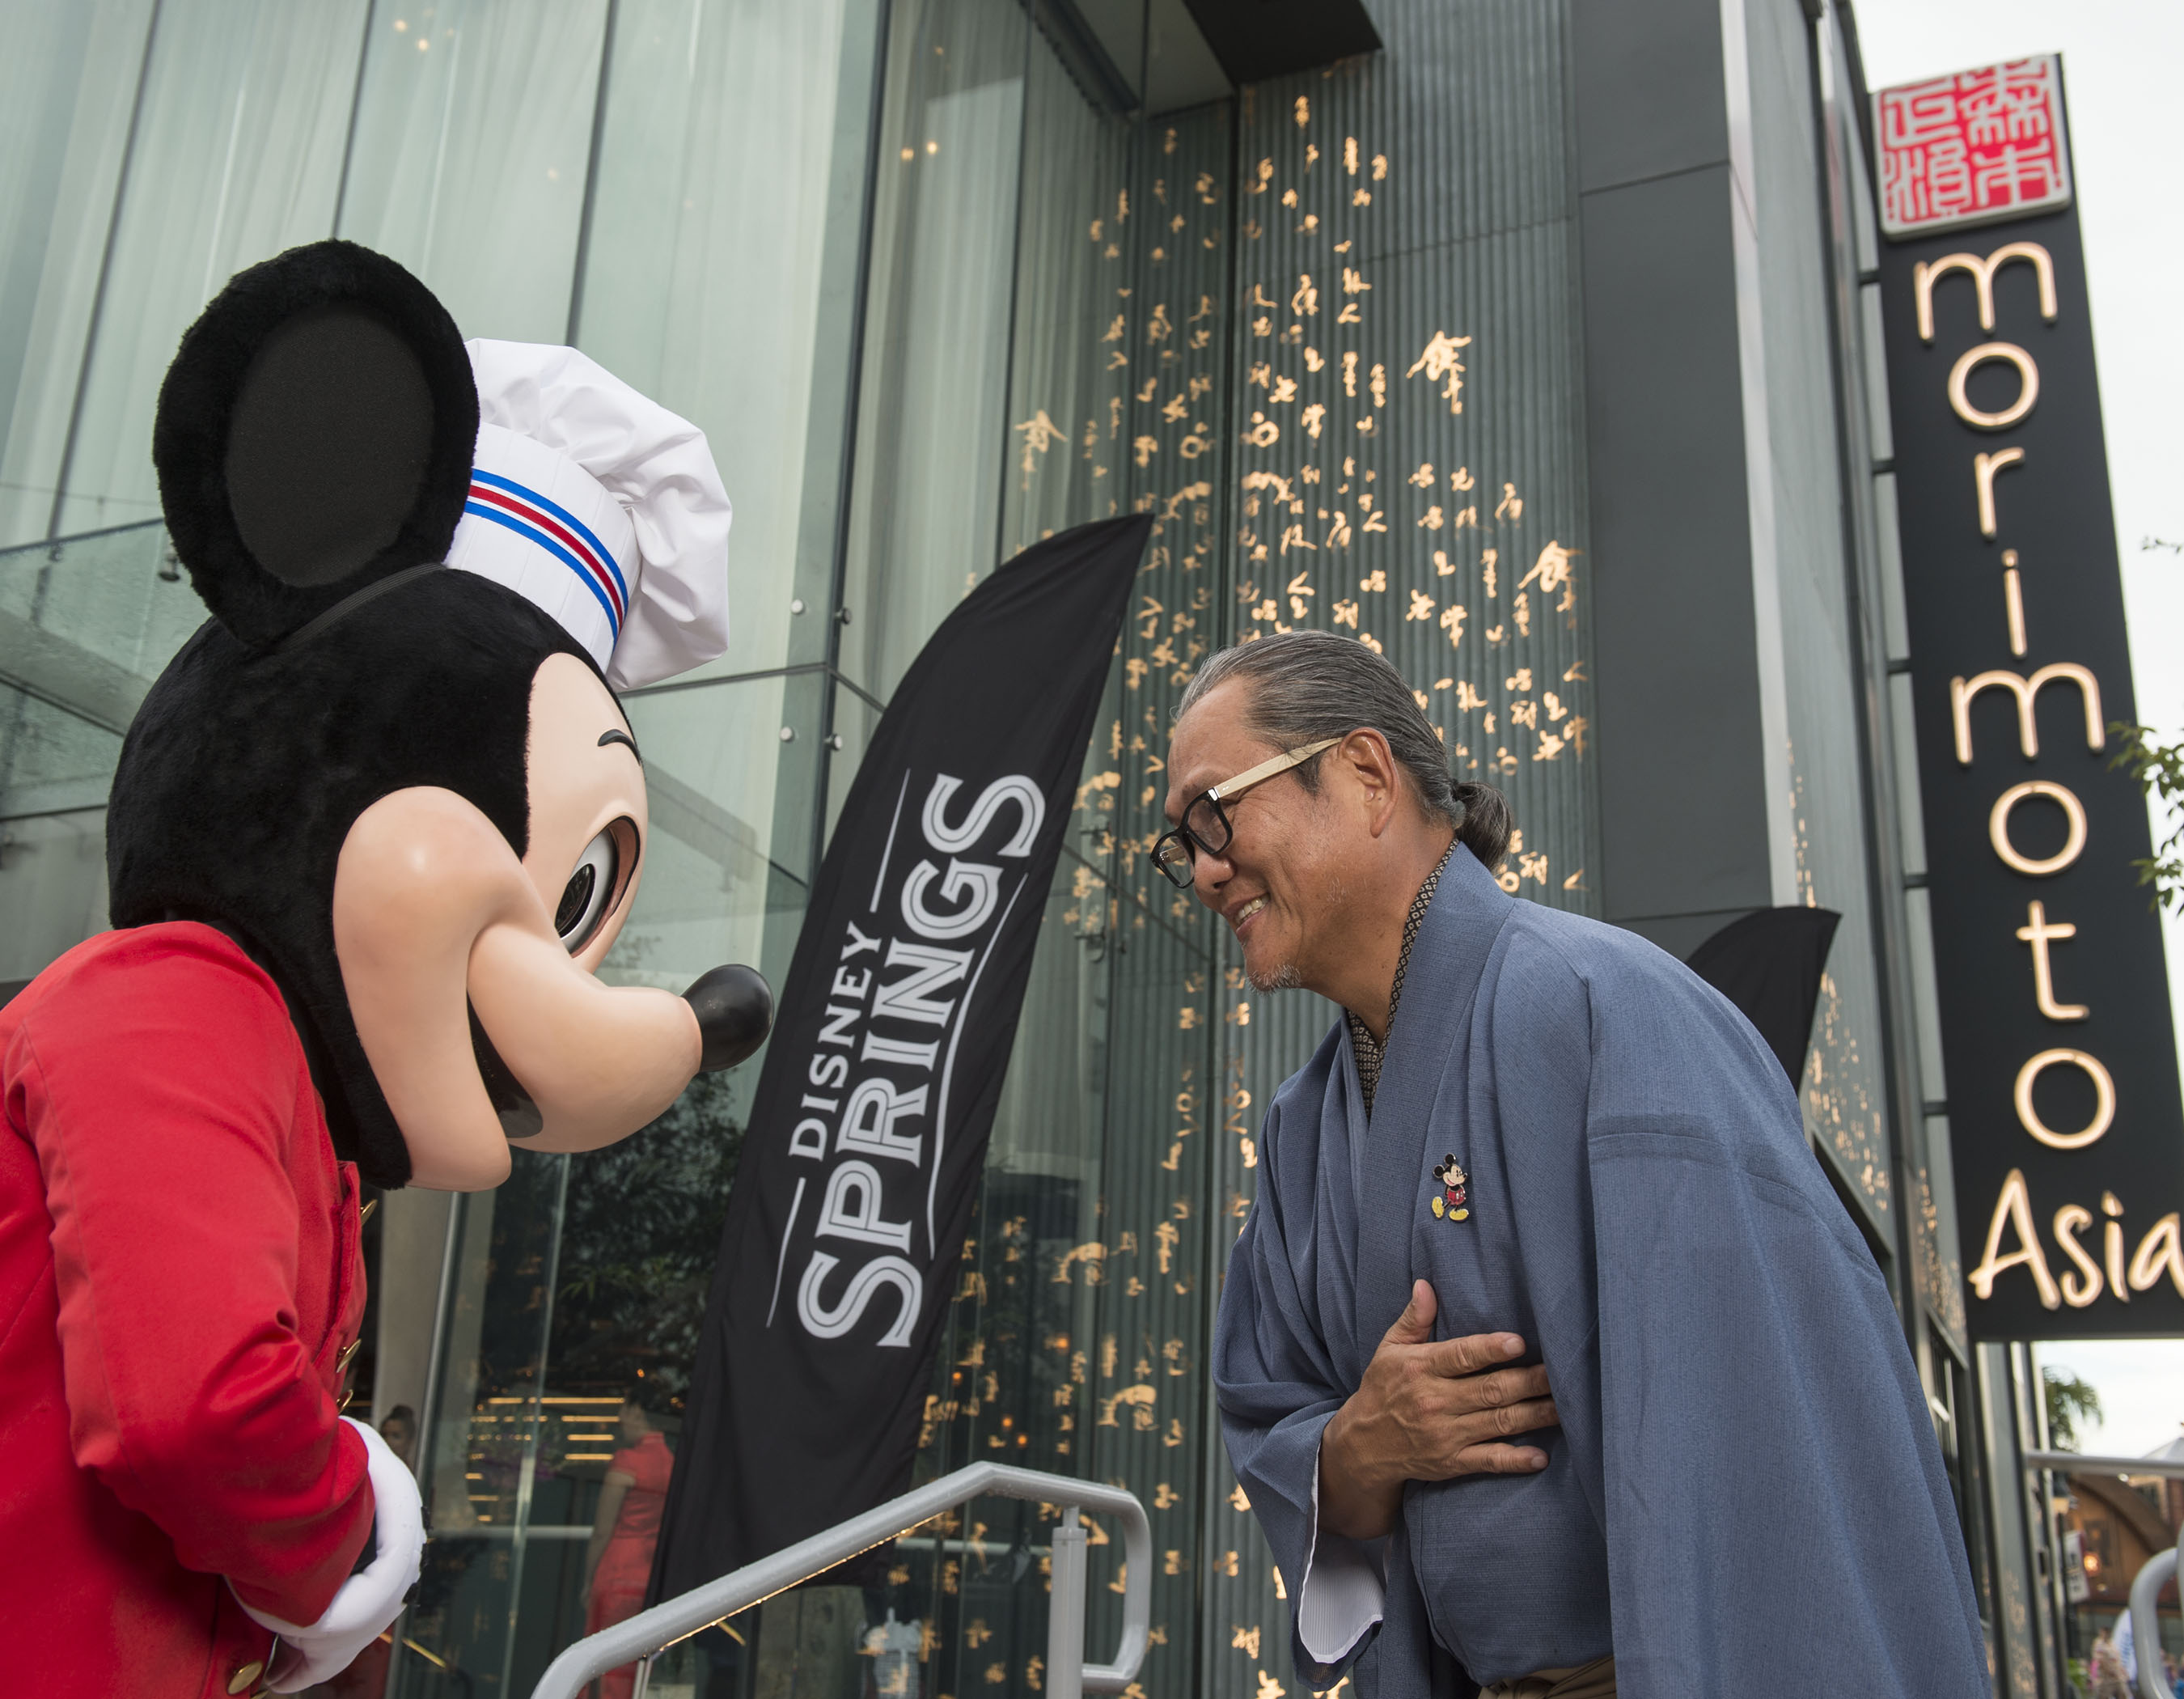 Iron Chef Morimoto and Mickey Mouse